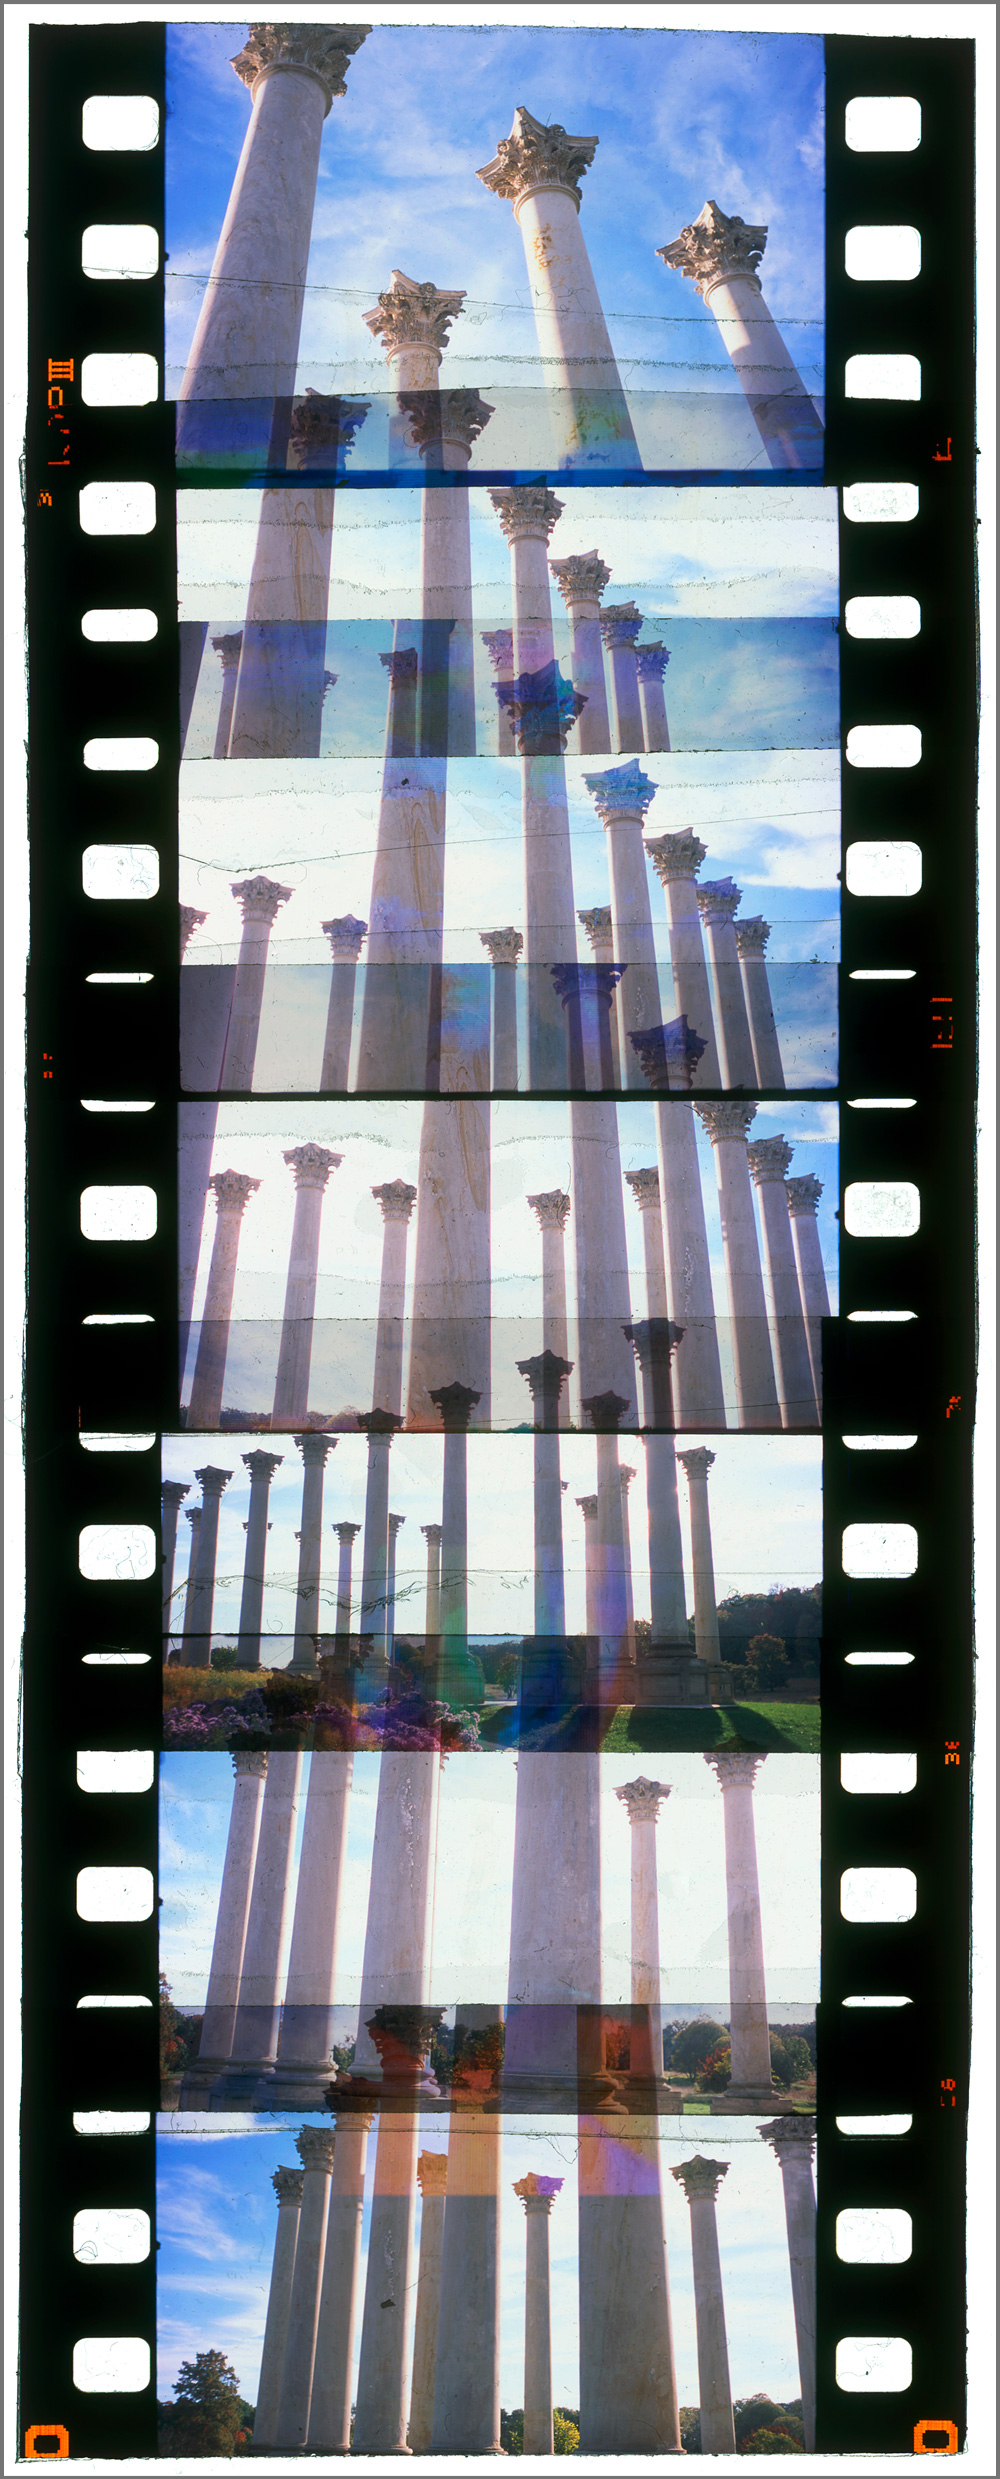 """WASHINGTON CUTUP 4,   ACRYLIC MOUNTED PRINT FROM 35MM TRANSPARENCY FILM COMPOSITION, 50"""" x 20"""", EDITION OF 5"""